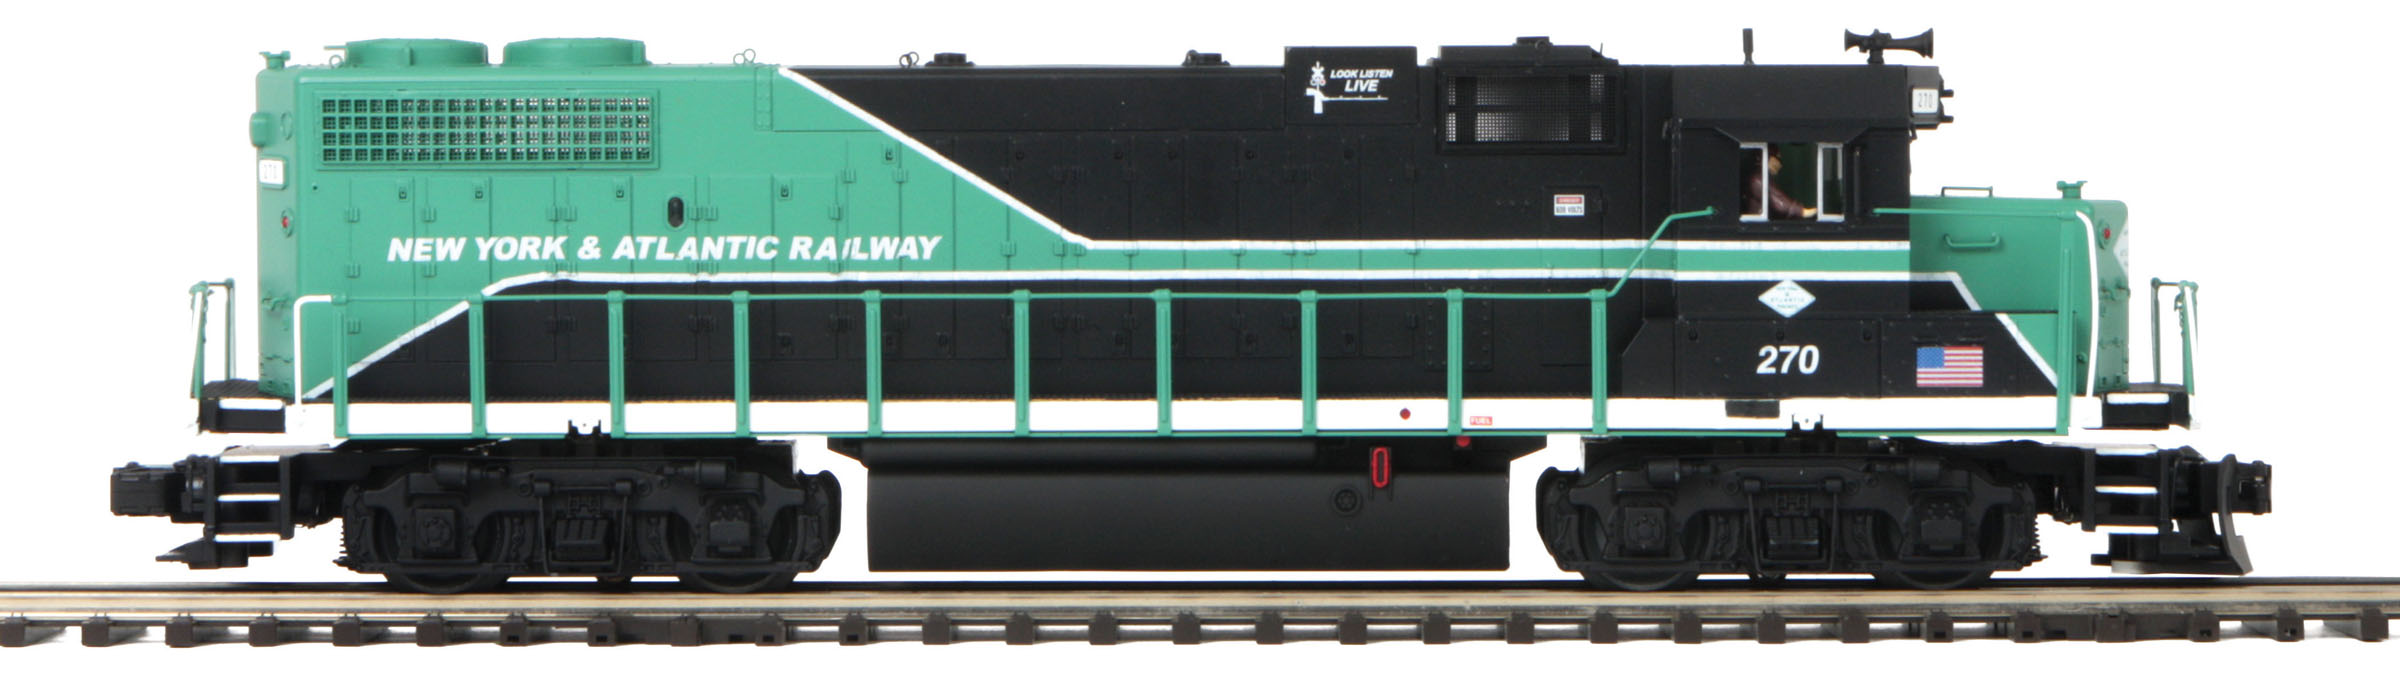 https://www.mthtrains.com/sites/default/files/product_images/20-20207-1.jpg